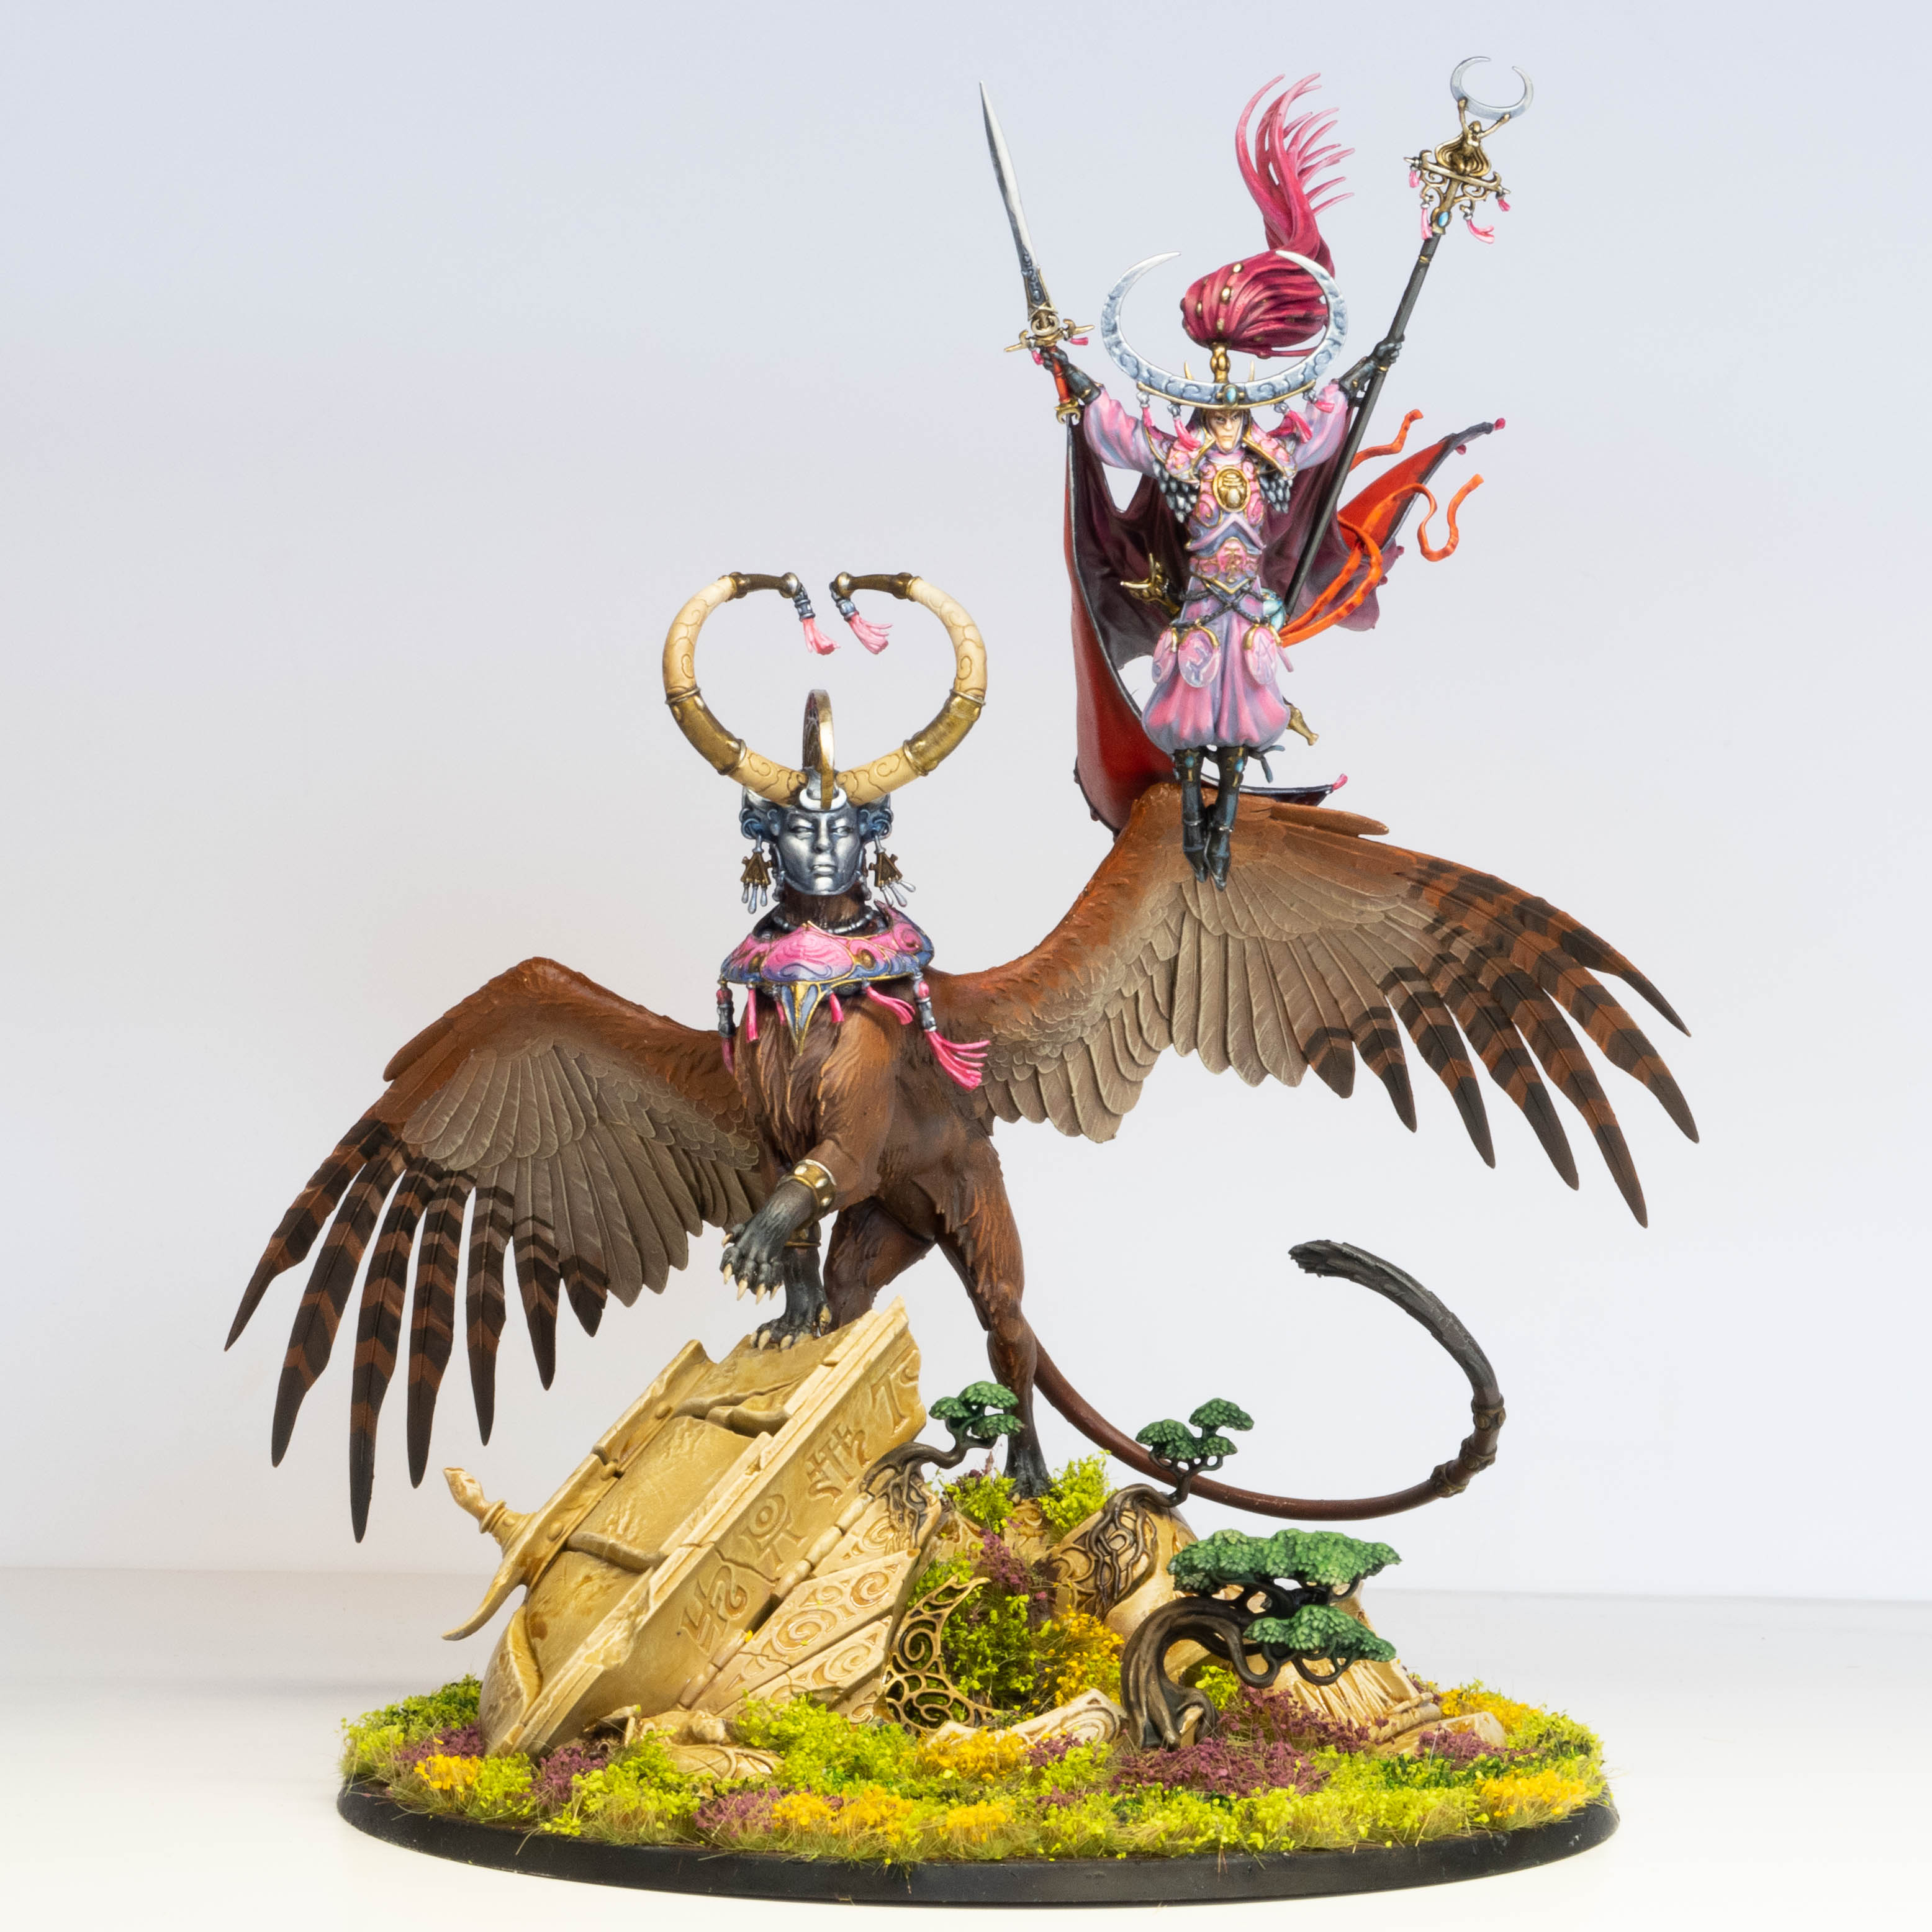 A model of Teclis, an elven wizard in ornate robes, hovering next to the Celennar, a winged feline creature with long curved horns.